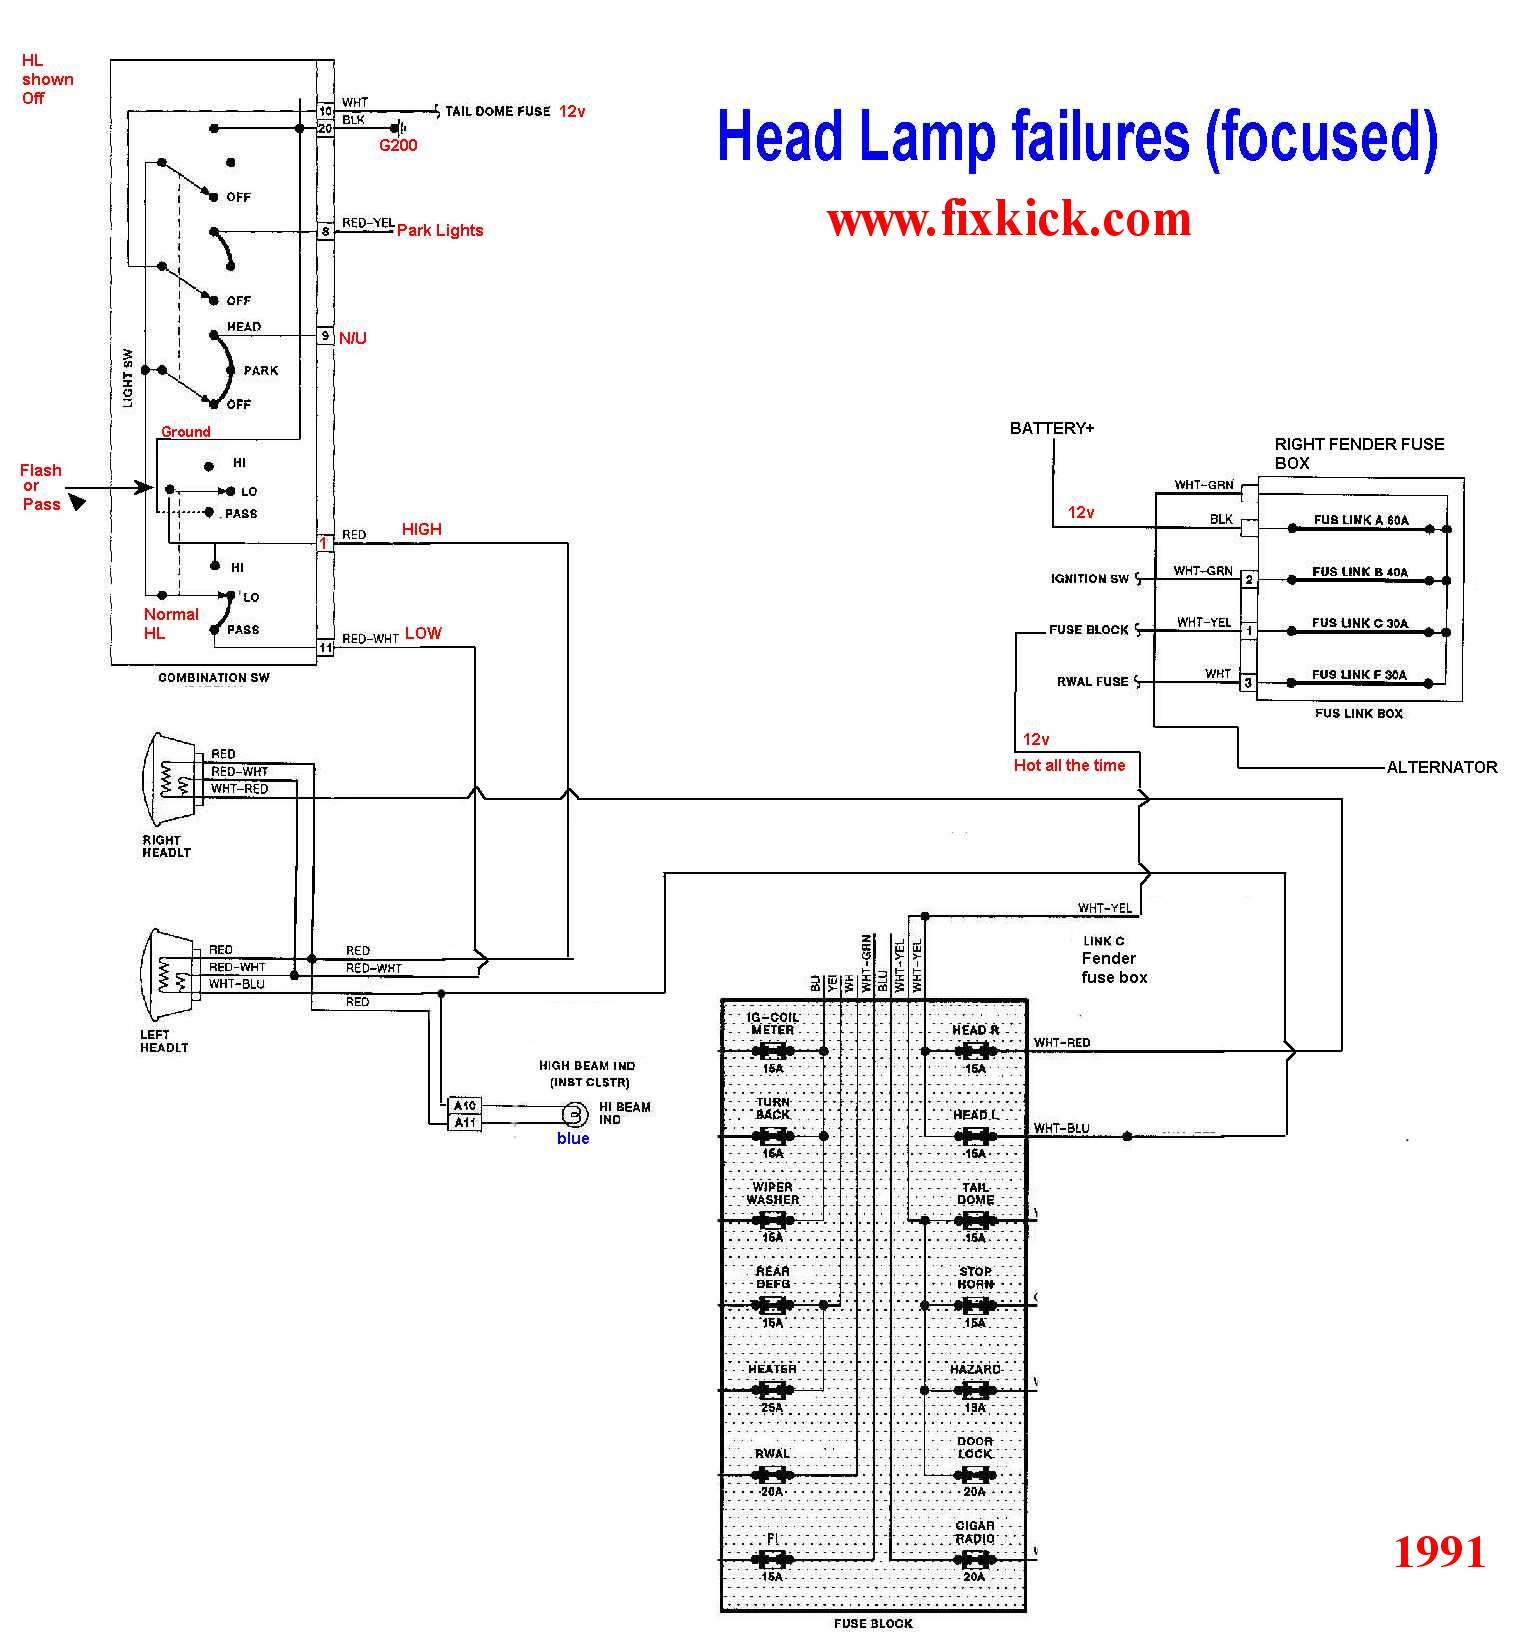 HL1A geo tracker wiring diagram 92 geo tracker wiring diagram \u2022 free 1986 suzuki samurai wiring diagram at crackthecode.co